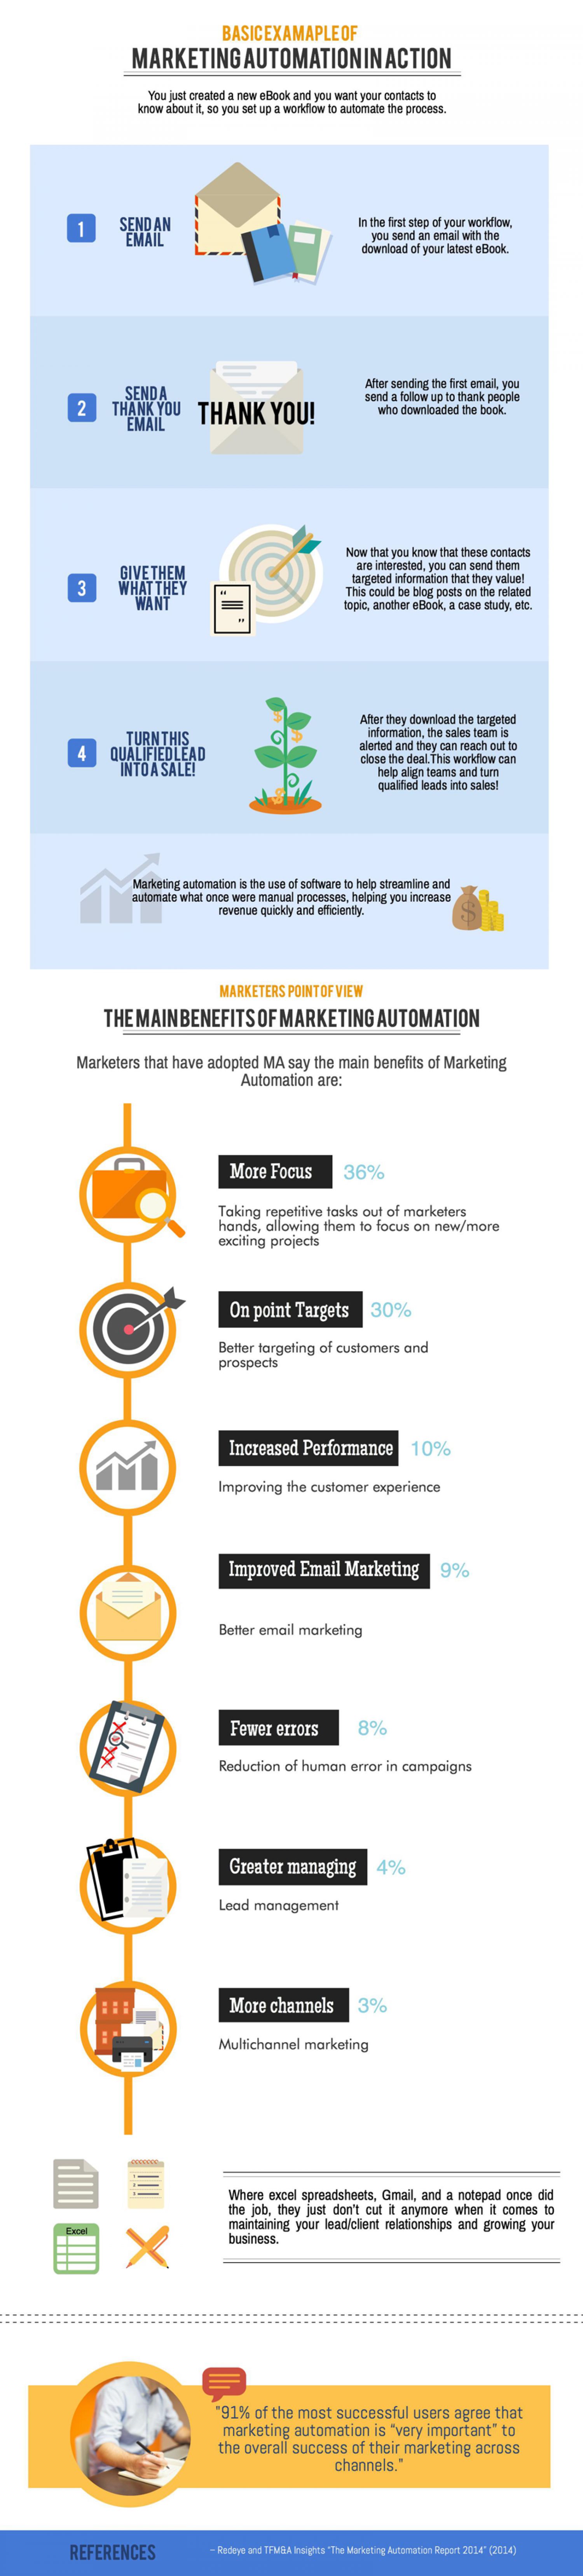 Examples & Benefits of Marketing Automation Infographic